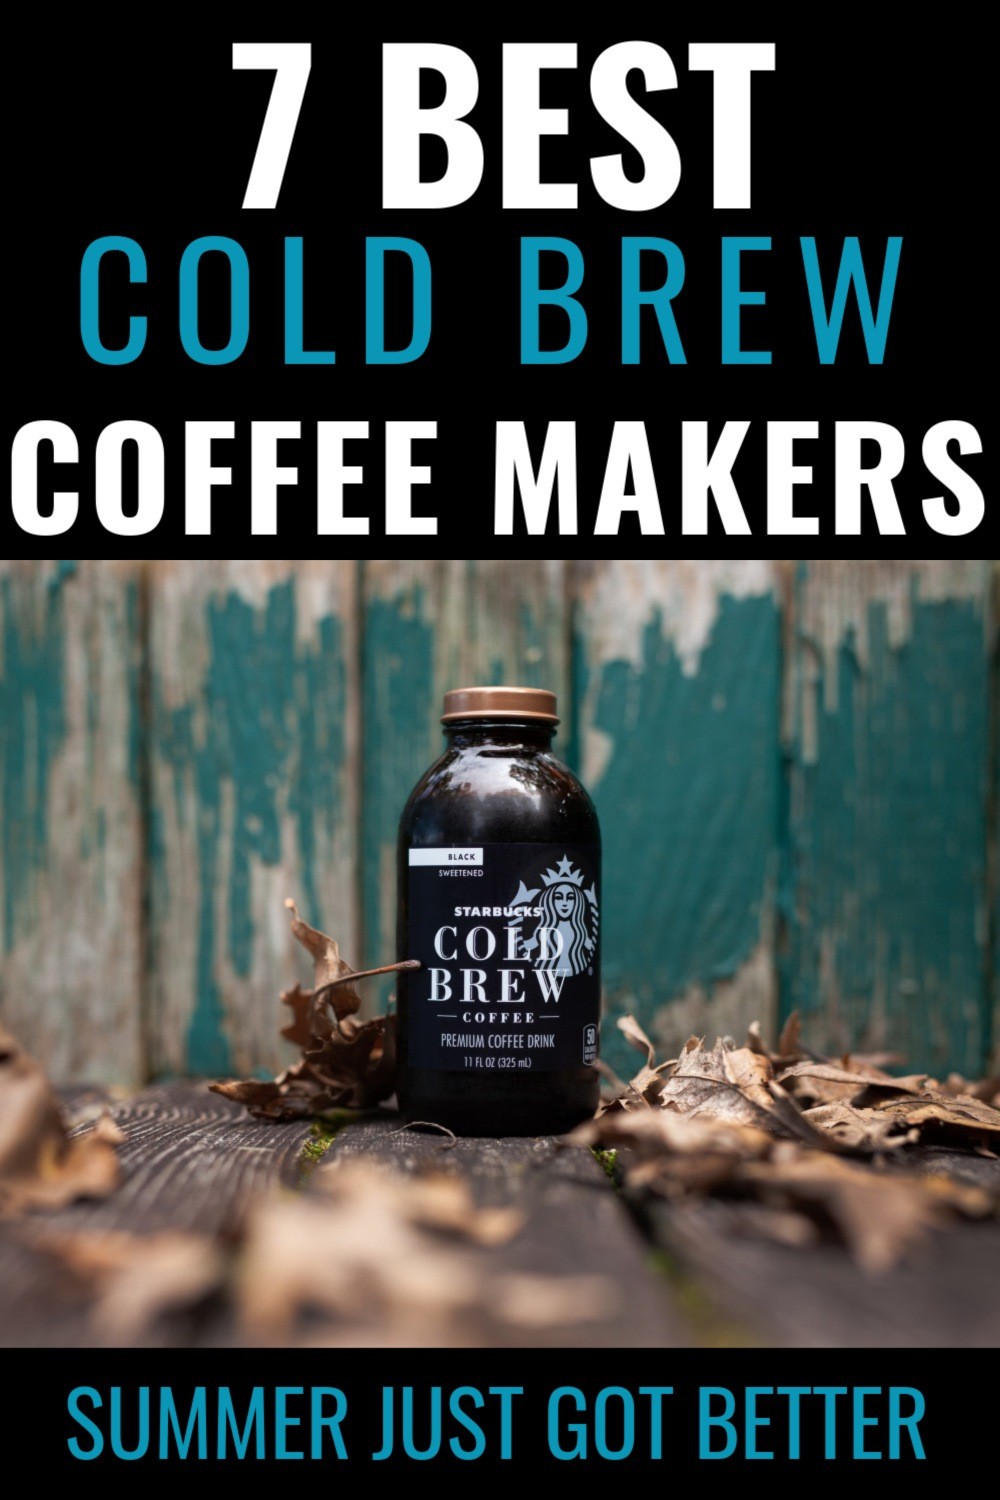 7 Best Cold Brew Coffee Makers In 2020. Are You Ready For Summer?